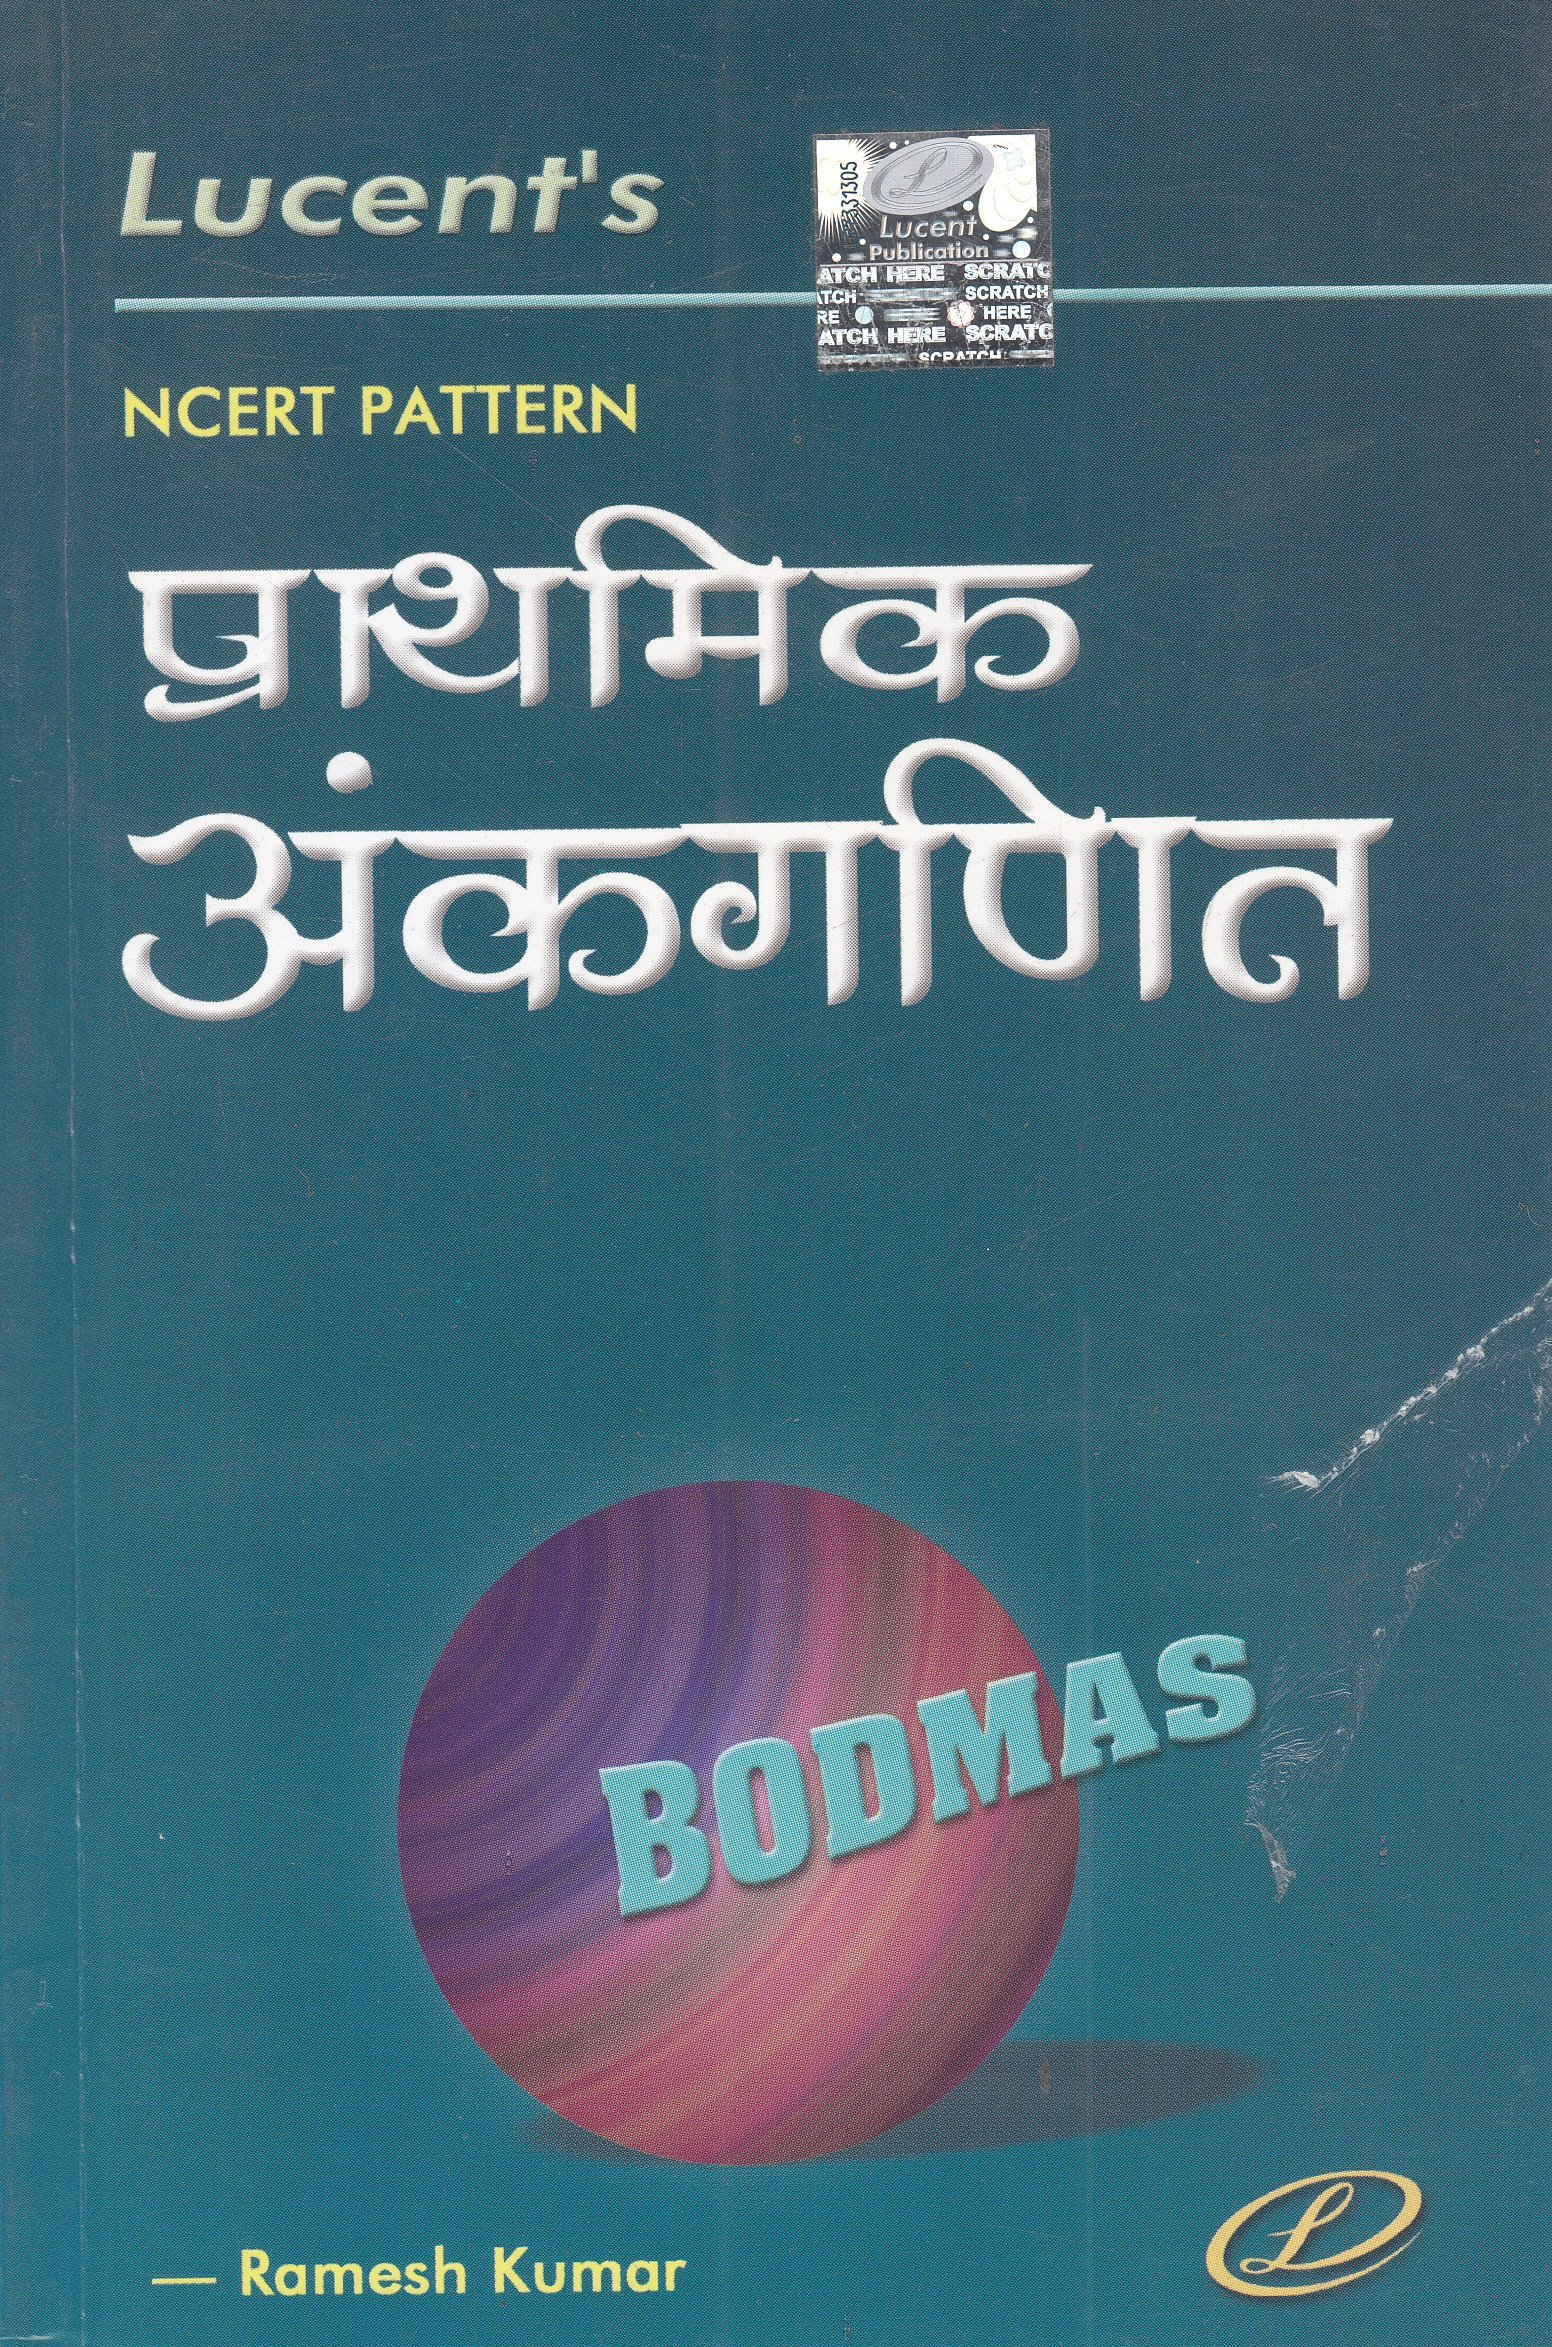 Ncert Math Book In Hindi